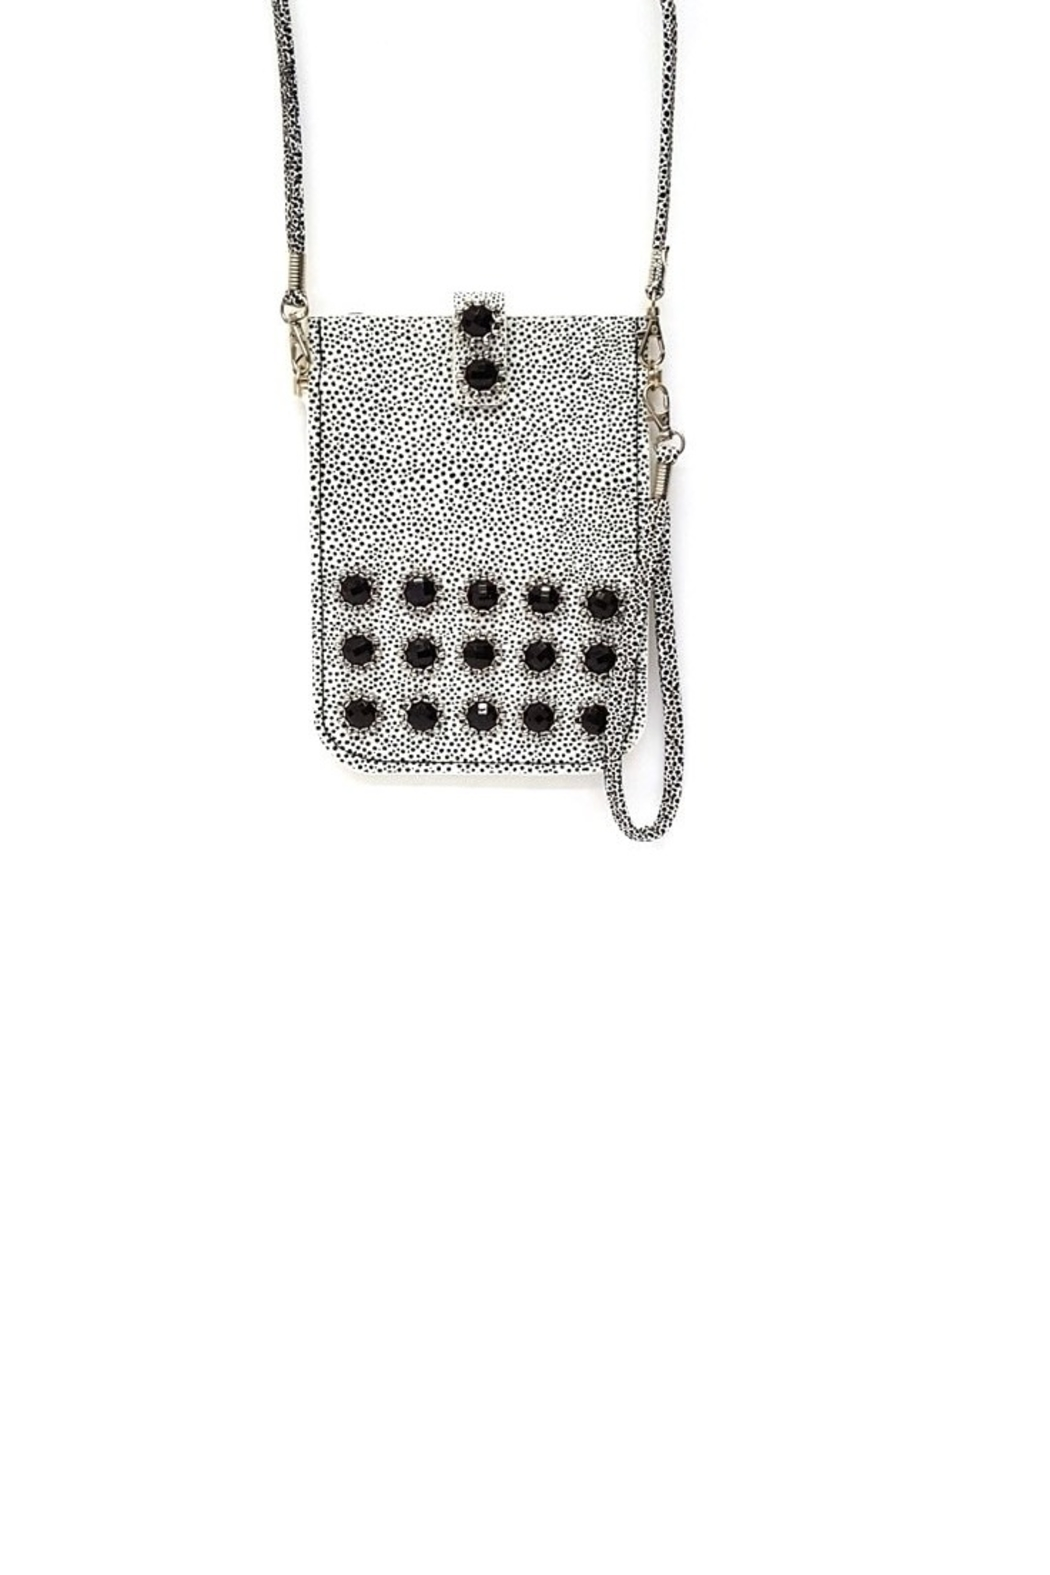 Treska Little Black/White Purse - Main Image